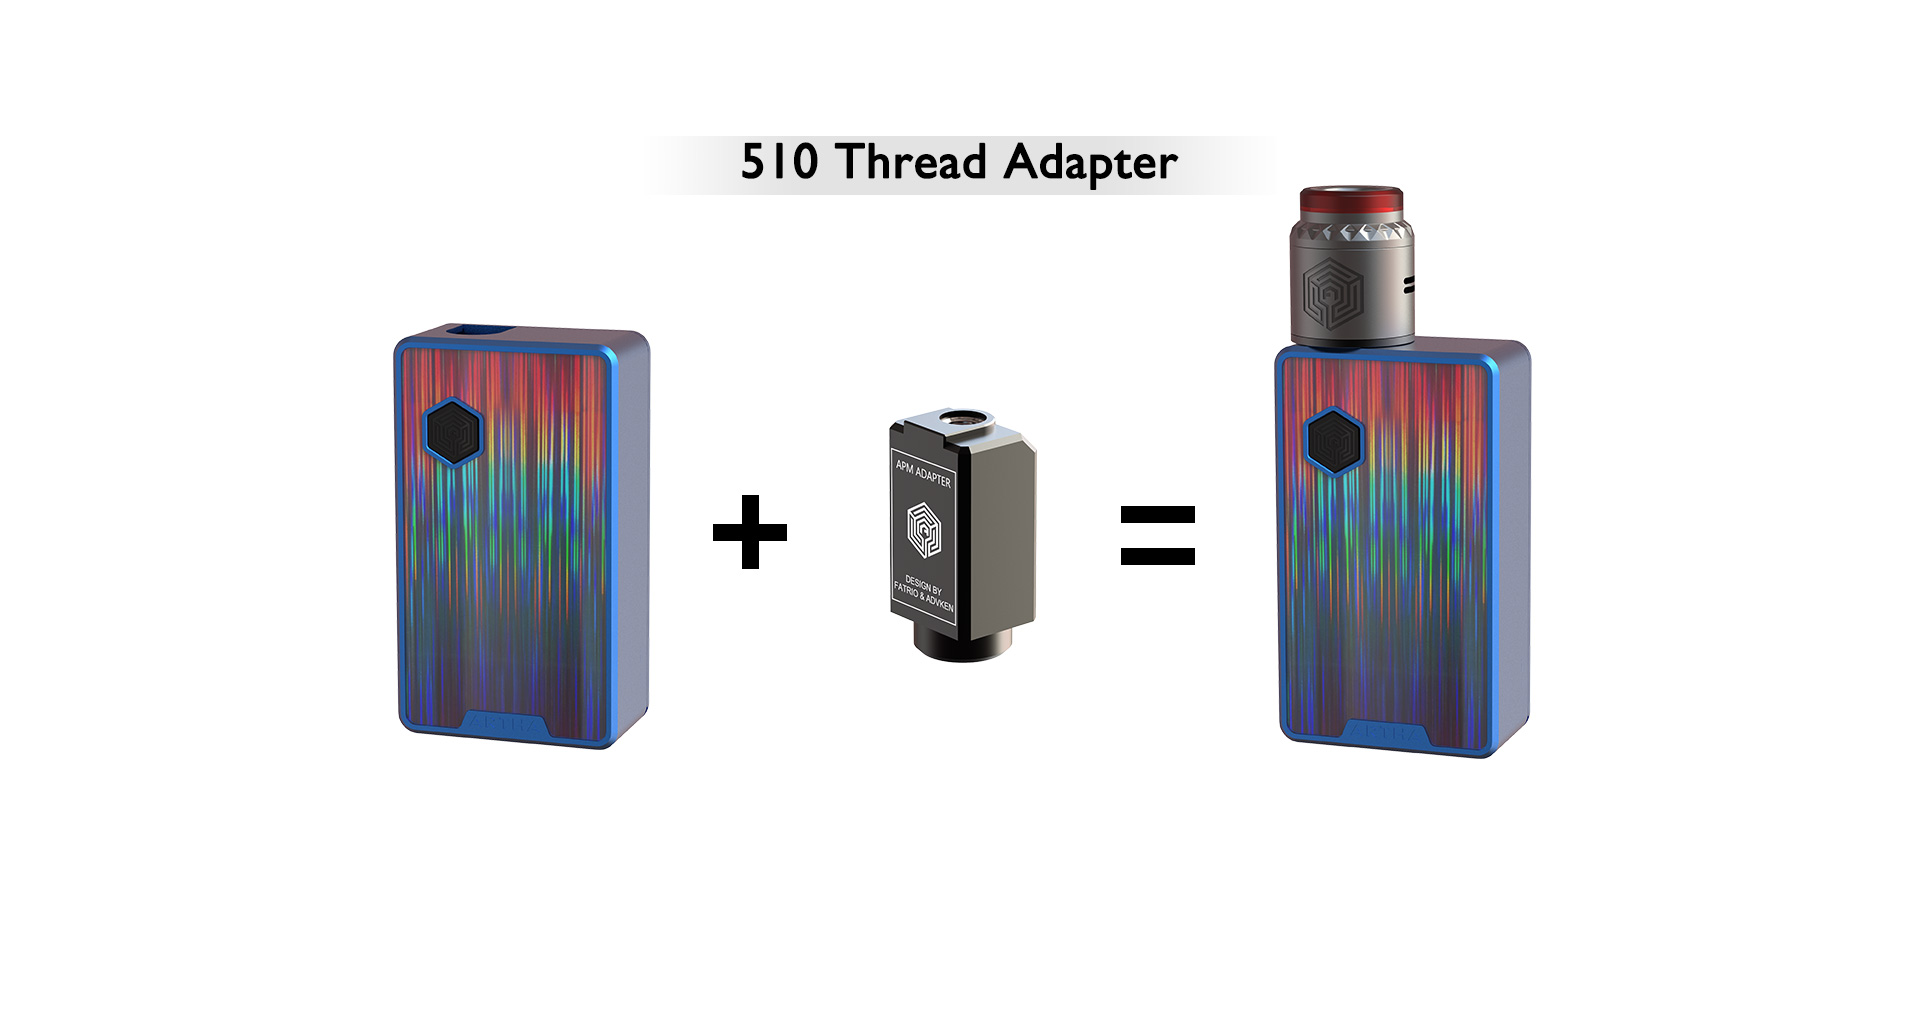 Advken Artha Pod Mod 510 Thread Adapter